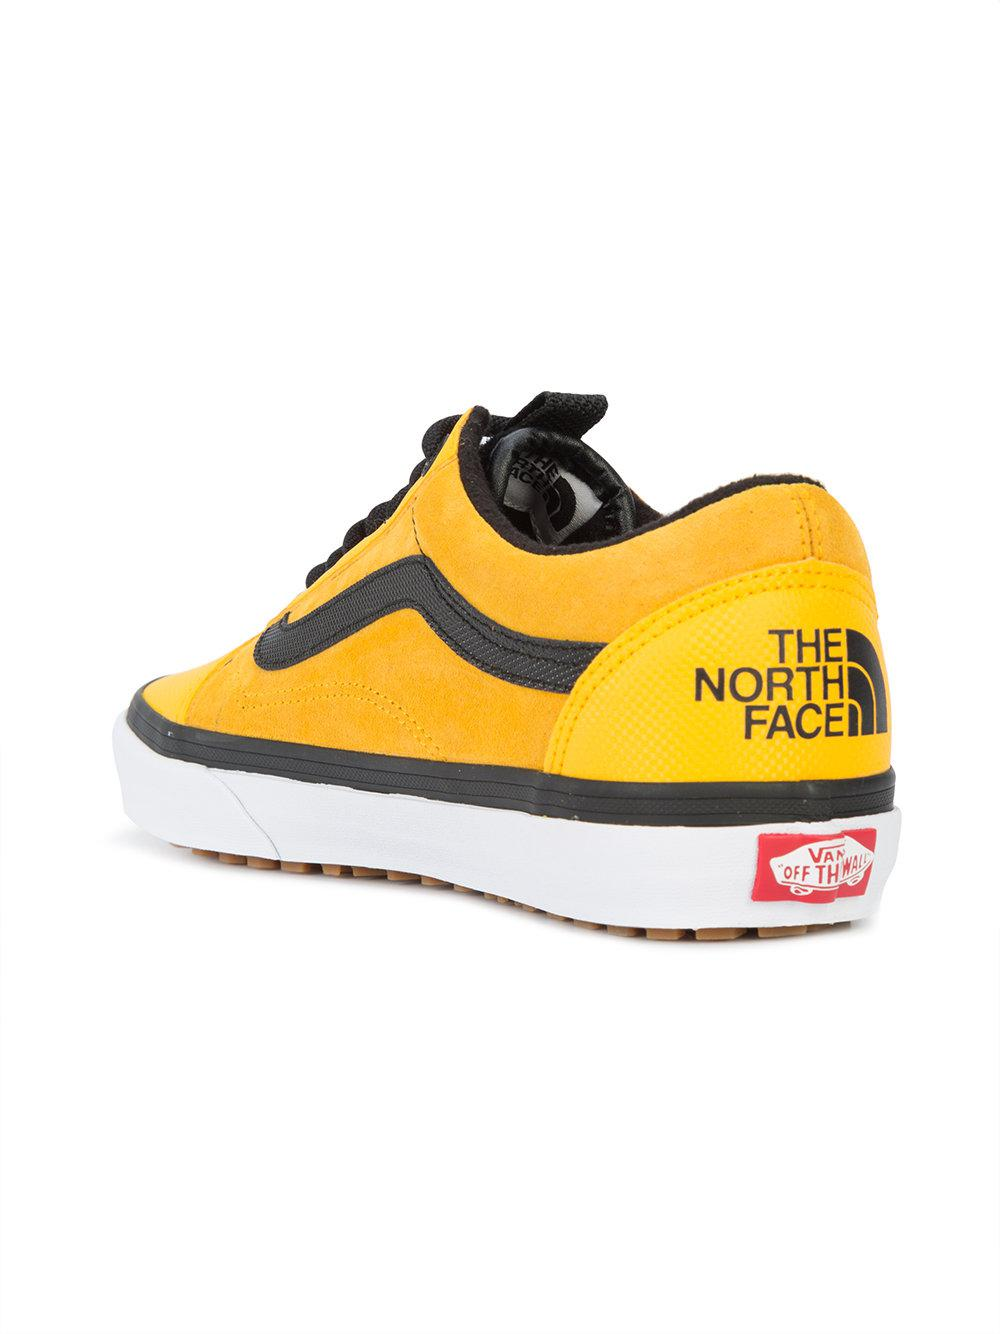 beb61c50a18 Vans X The North Face Old Skool Mte Dx Sneakers in Yellow for Men - Lyst